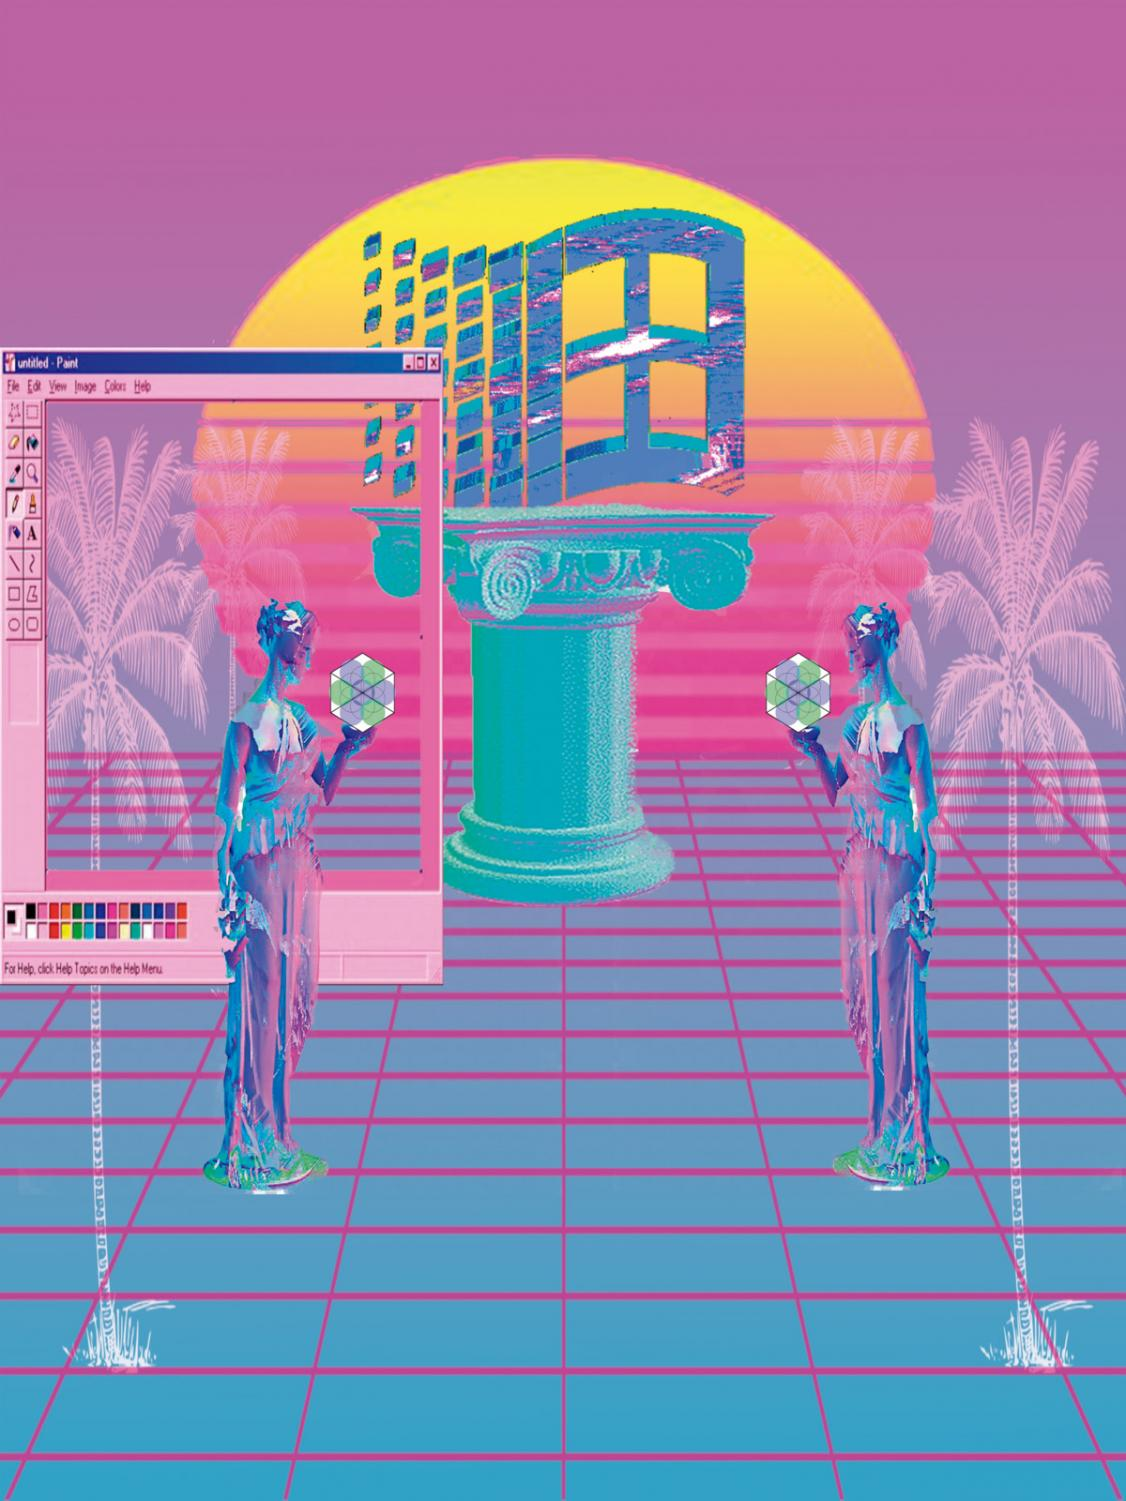 Vaporwave is an Internet-based microgenre that was built upon the experimental and ironic tendencies of genres such as chillwave and hypnagogic pop.